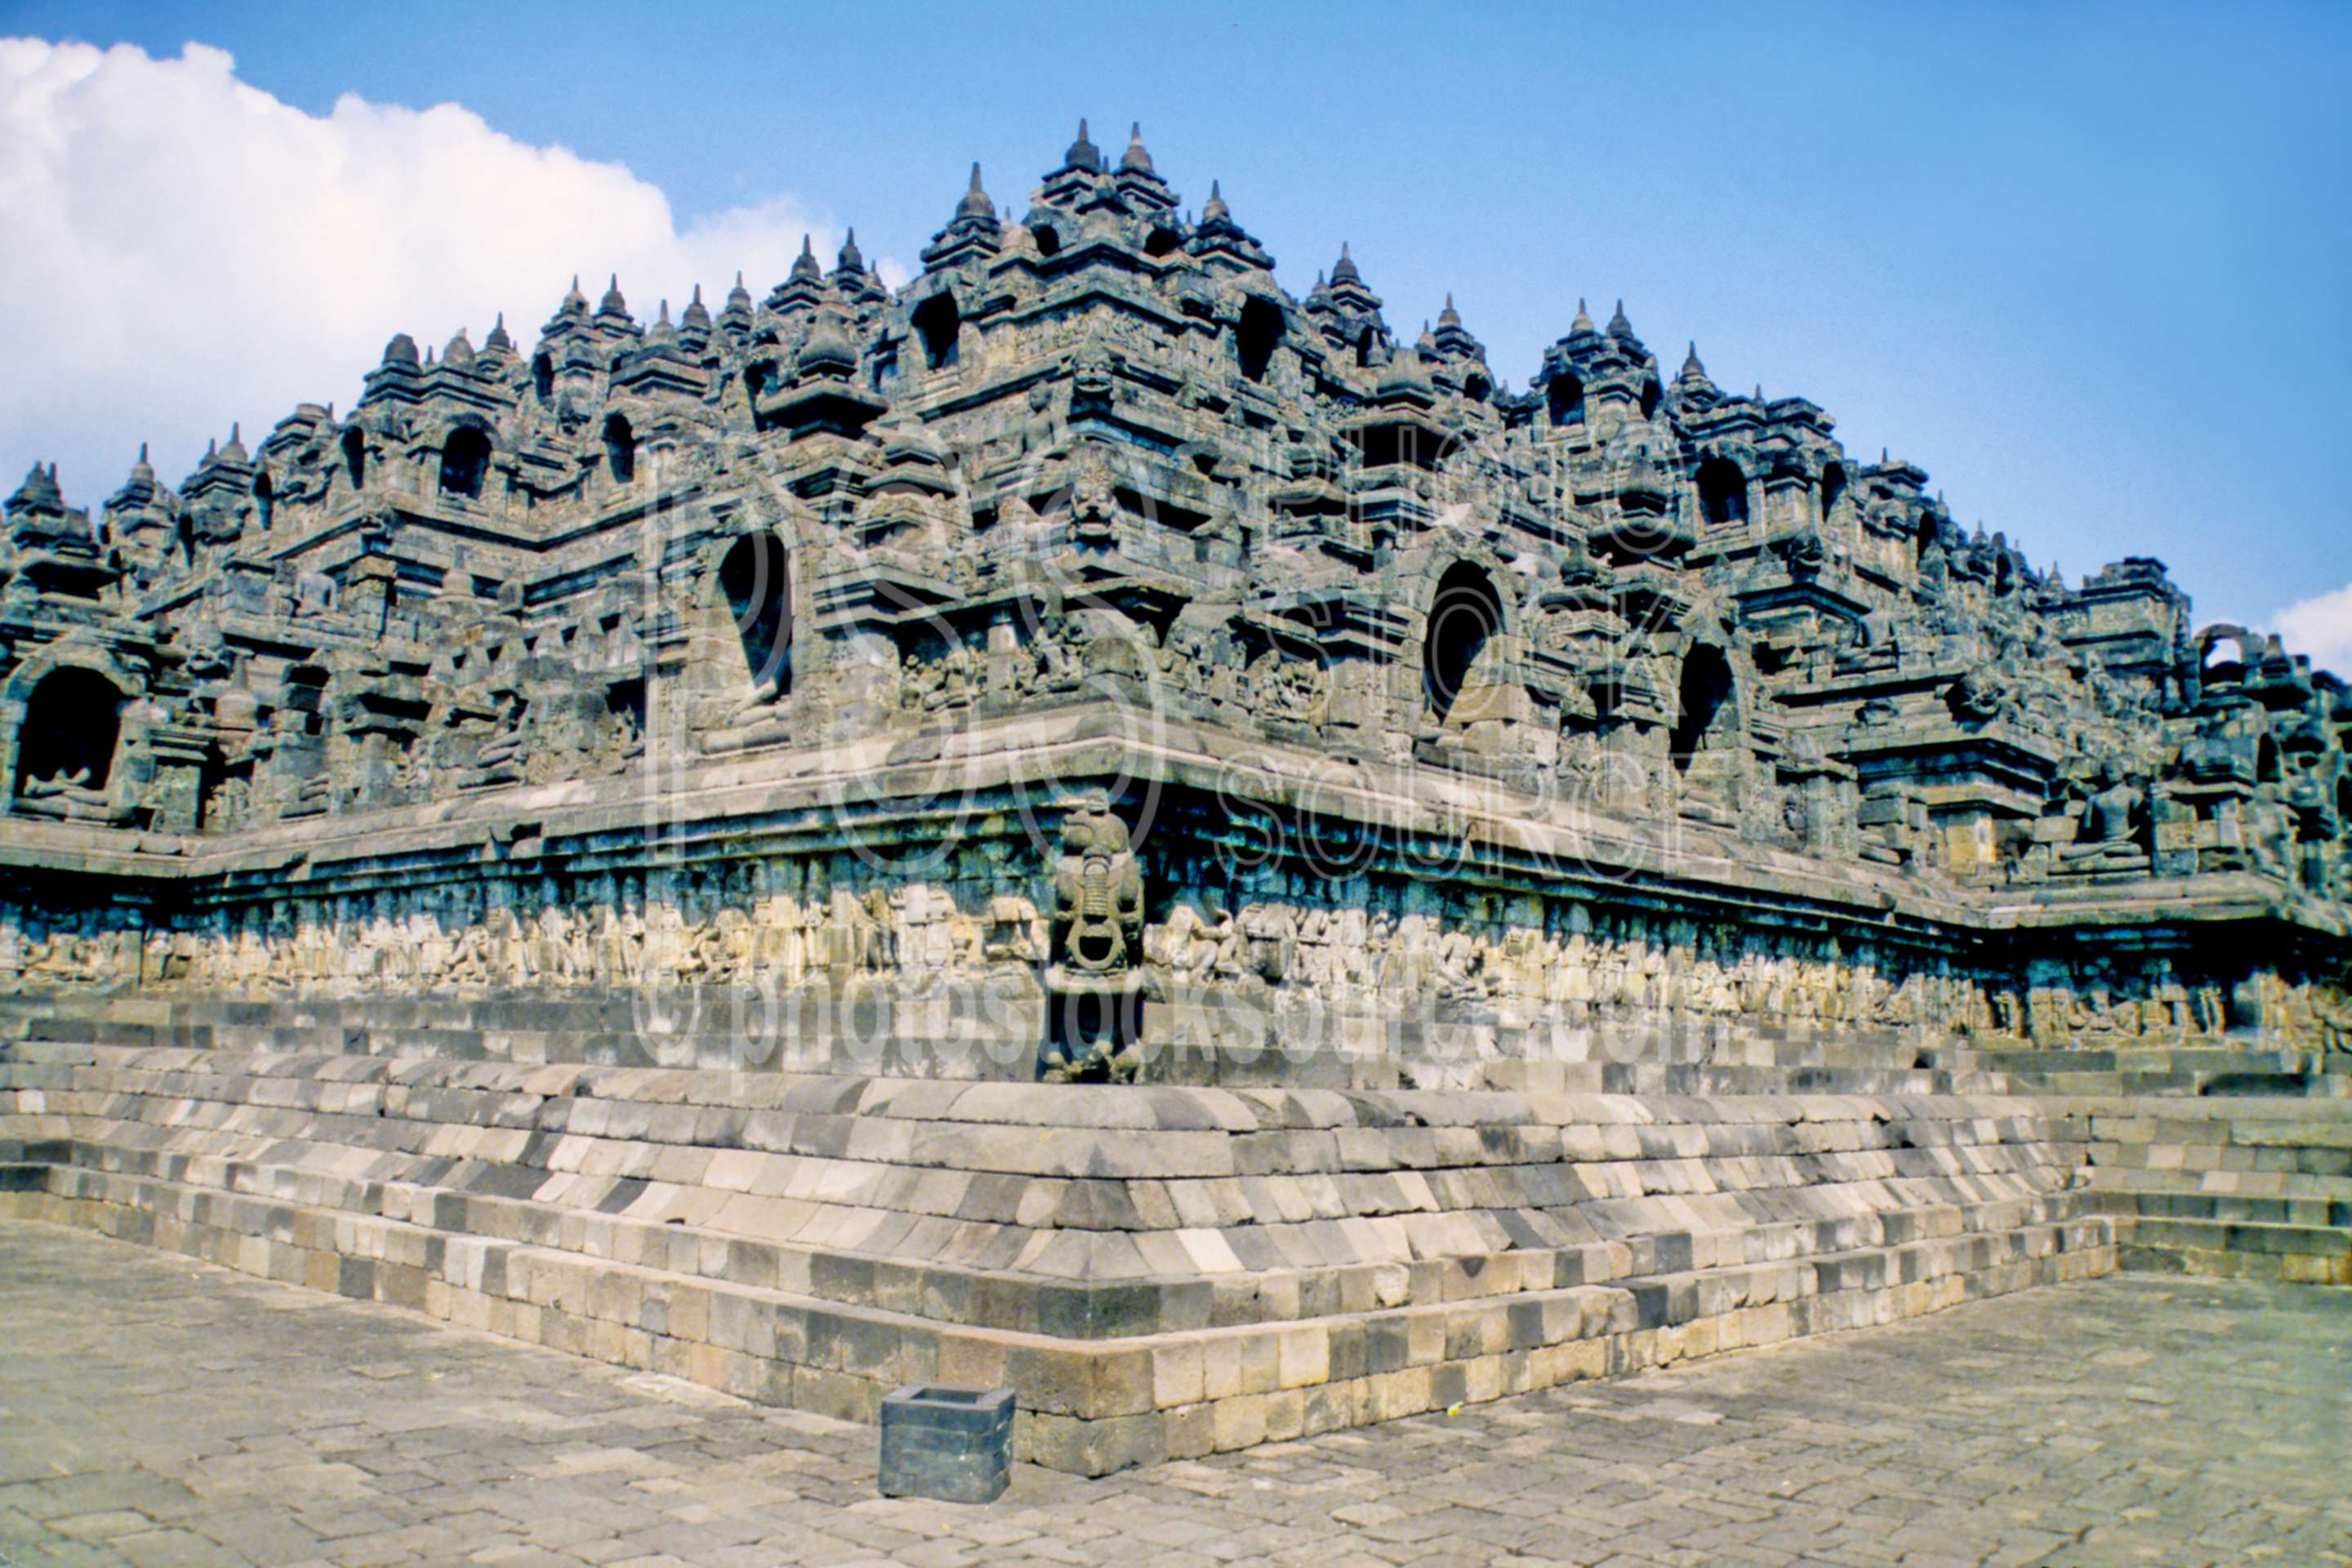 Corner of Temple,carving,religious,statues,buddhist,ruin